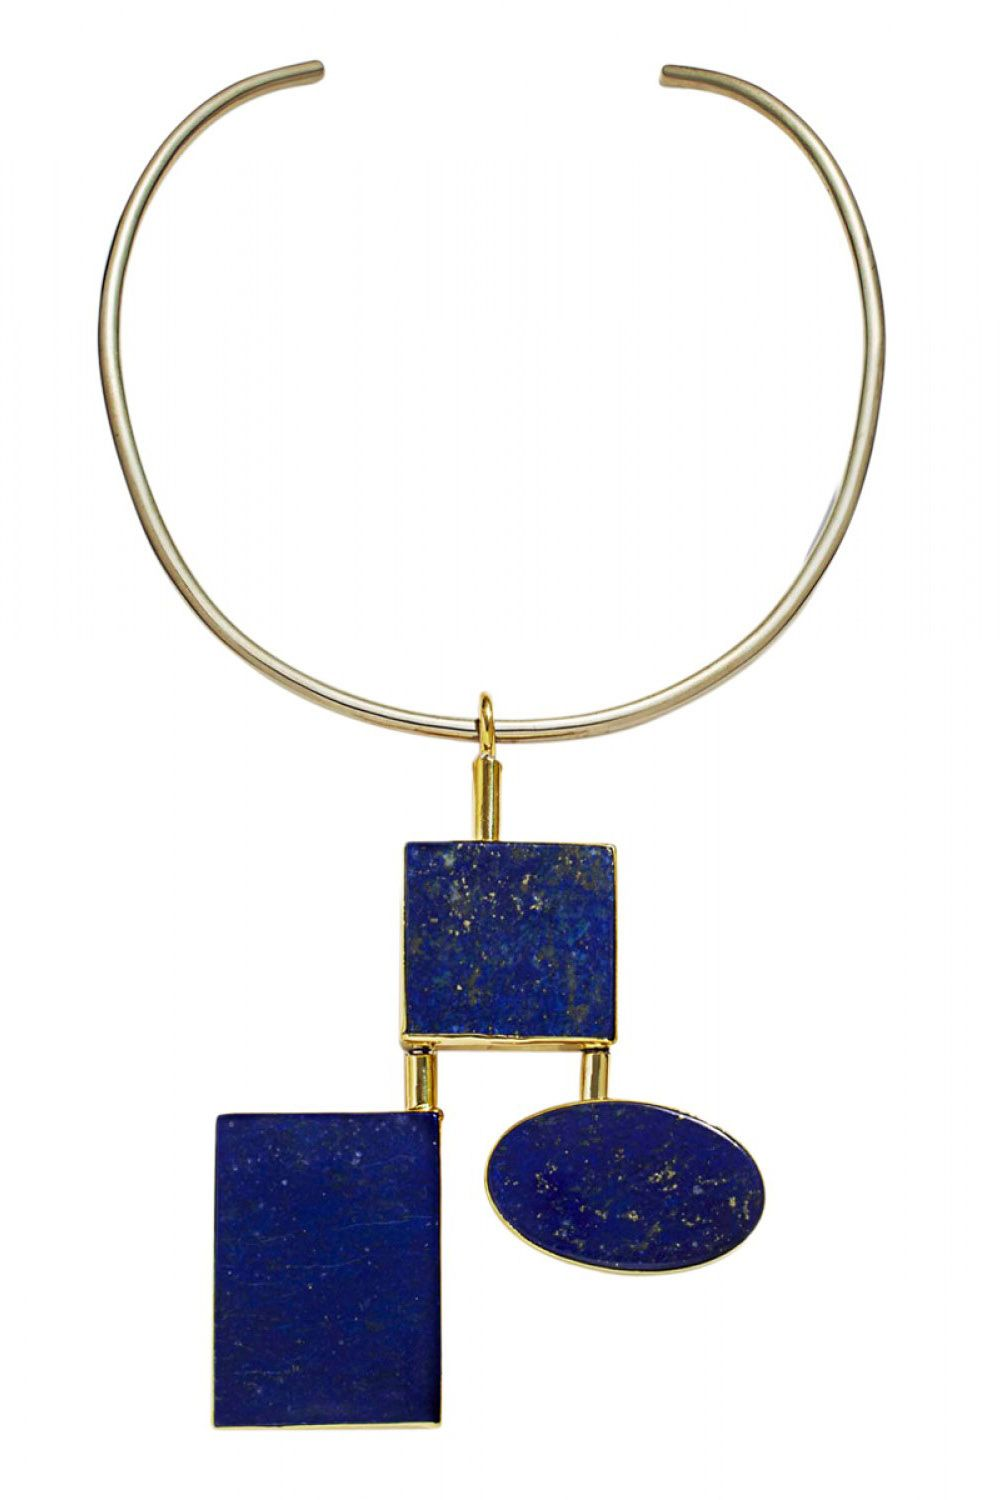 "Sturdy options anchored with geometric pendants are instant outfit-makers.   <strong>Anndra Neen </strong>necklace, $560, <a target=""_blank"" href=""http://shop.harpersbazaar.com/designers/anndra-neen/cleo-choker/"">shopBAZAAR.com</a>"